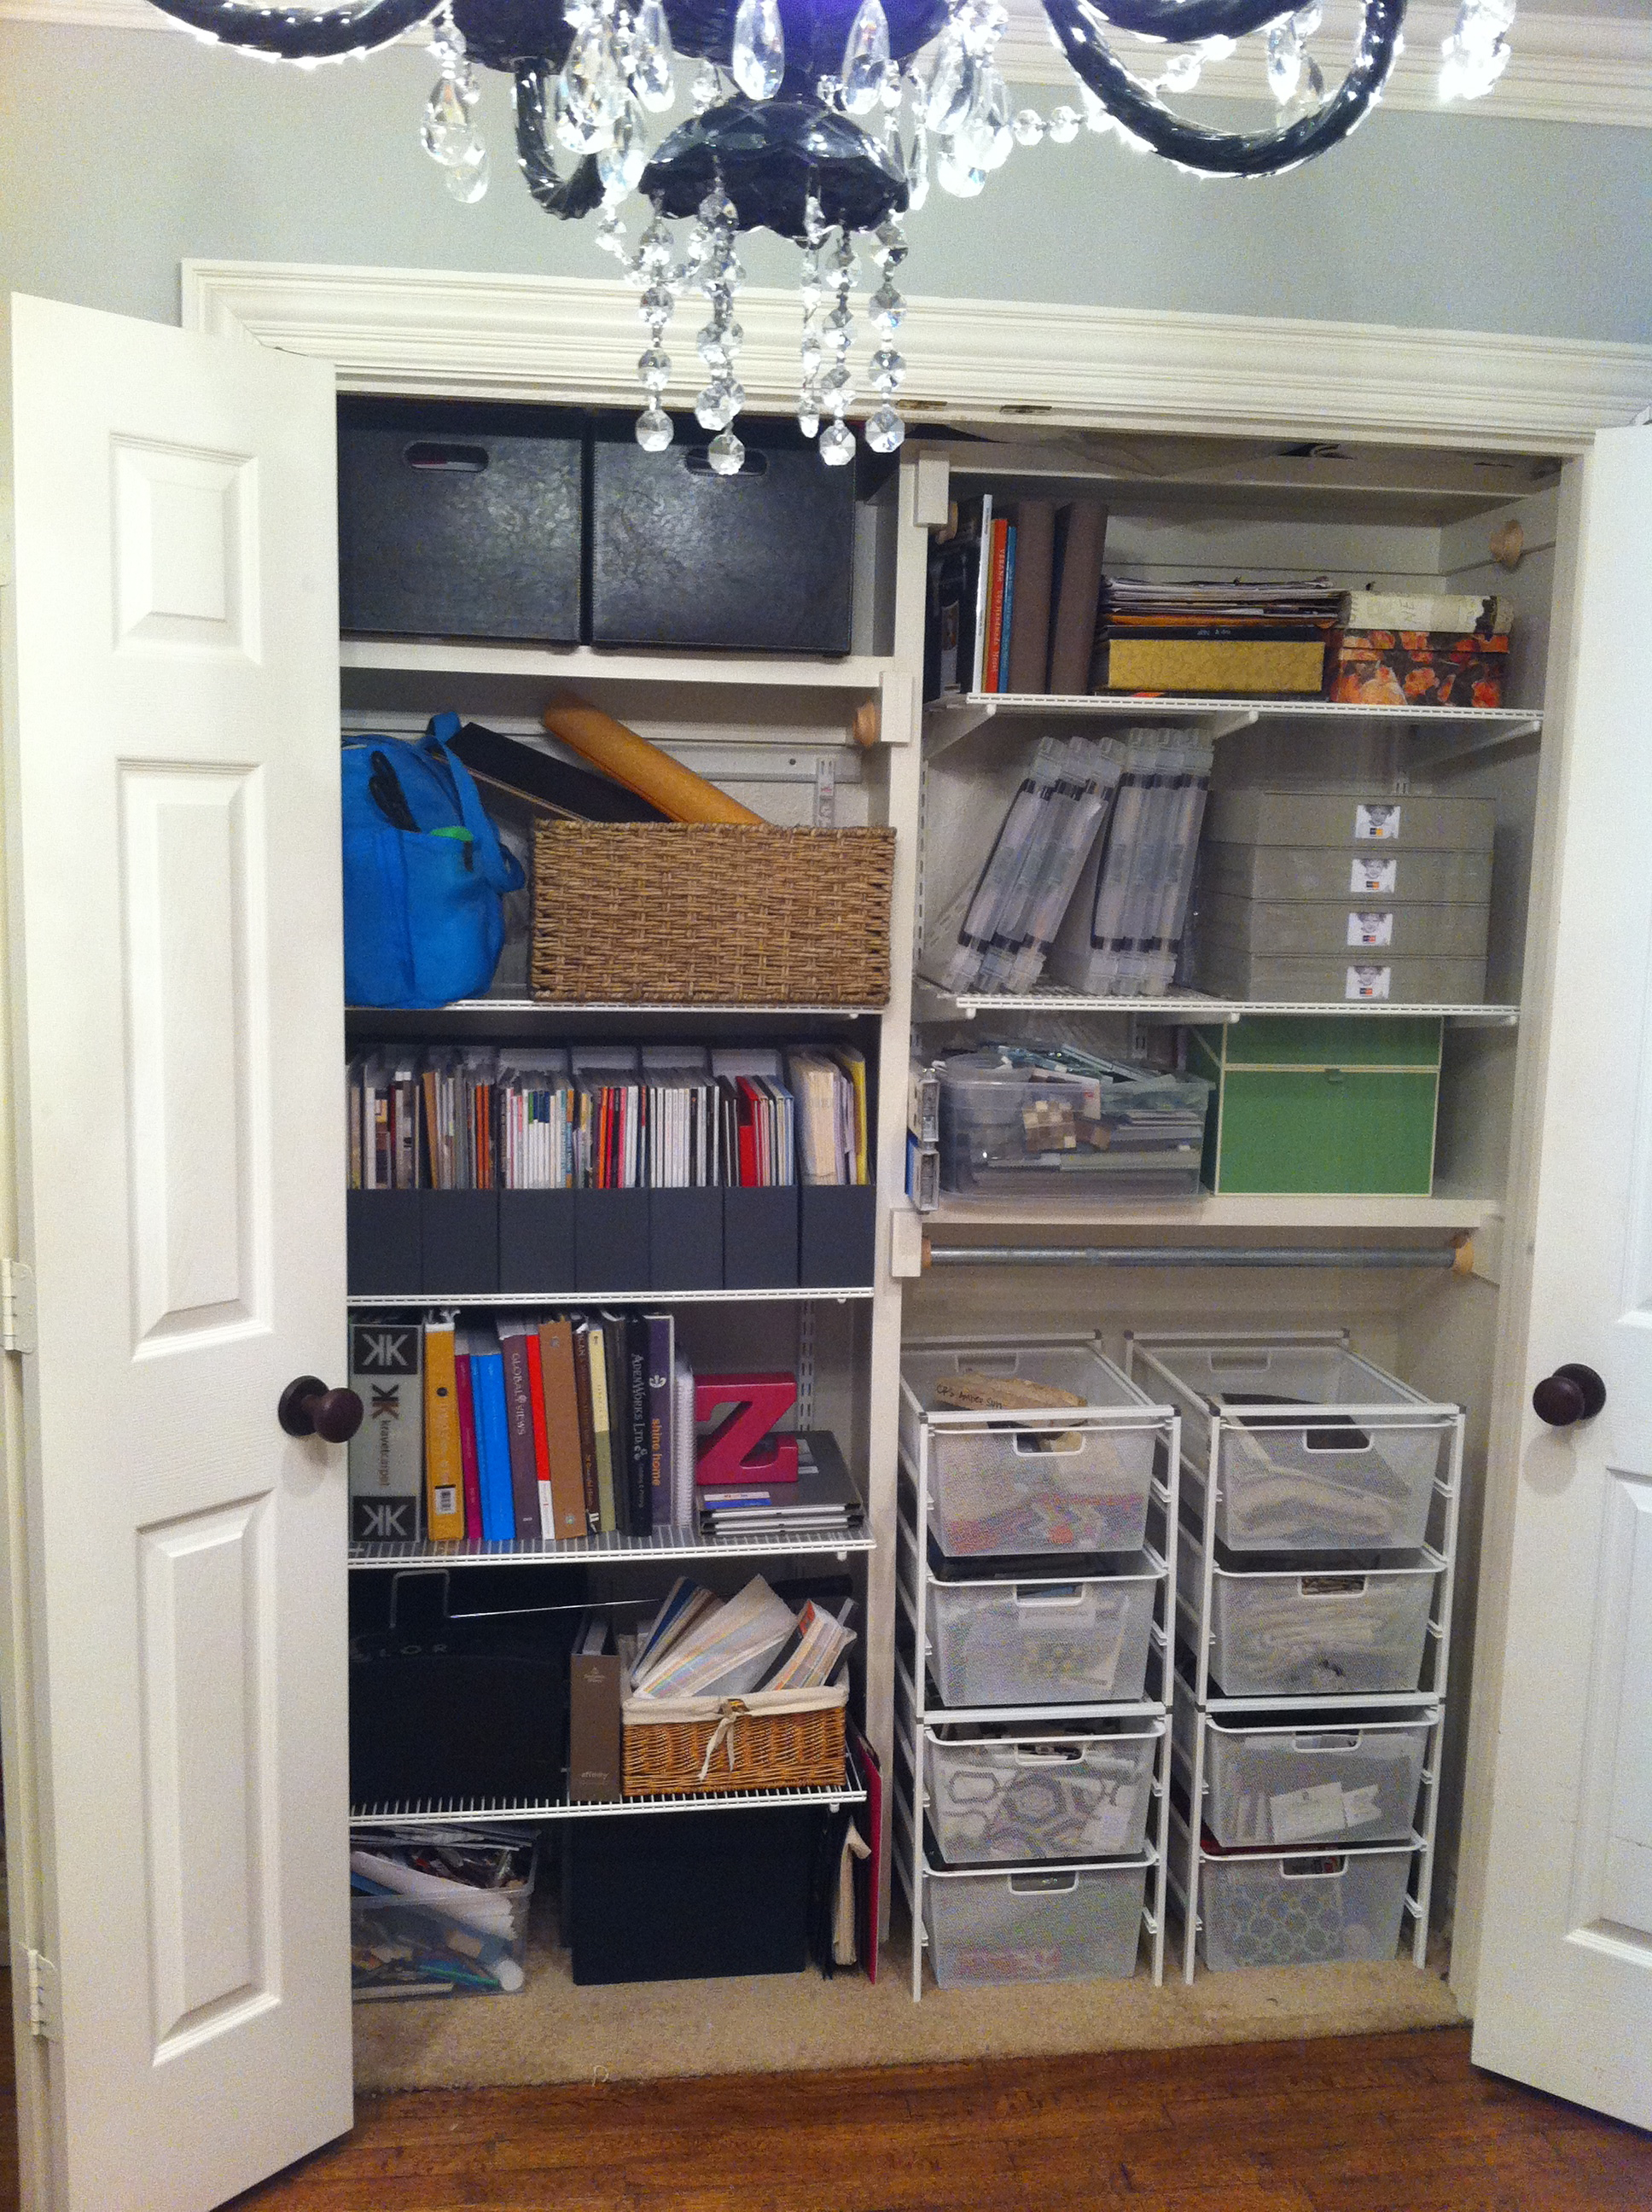 ptc students quotalloquot google pittsburgh. Organized Office Closet. Simple Iu0027m Intended Closet N Ptc Students Quotalloquot Google Pittsburgh Y